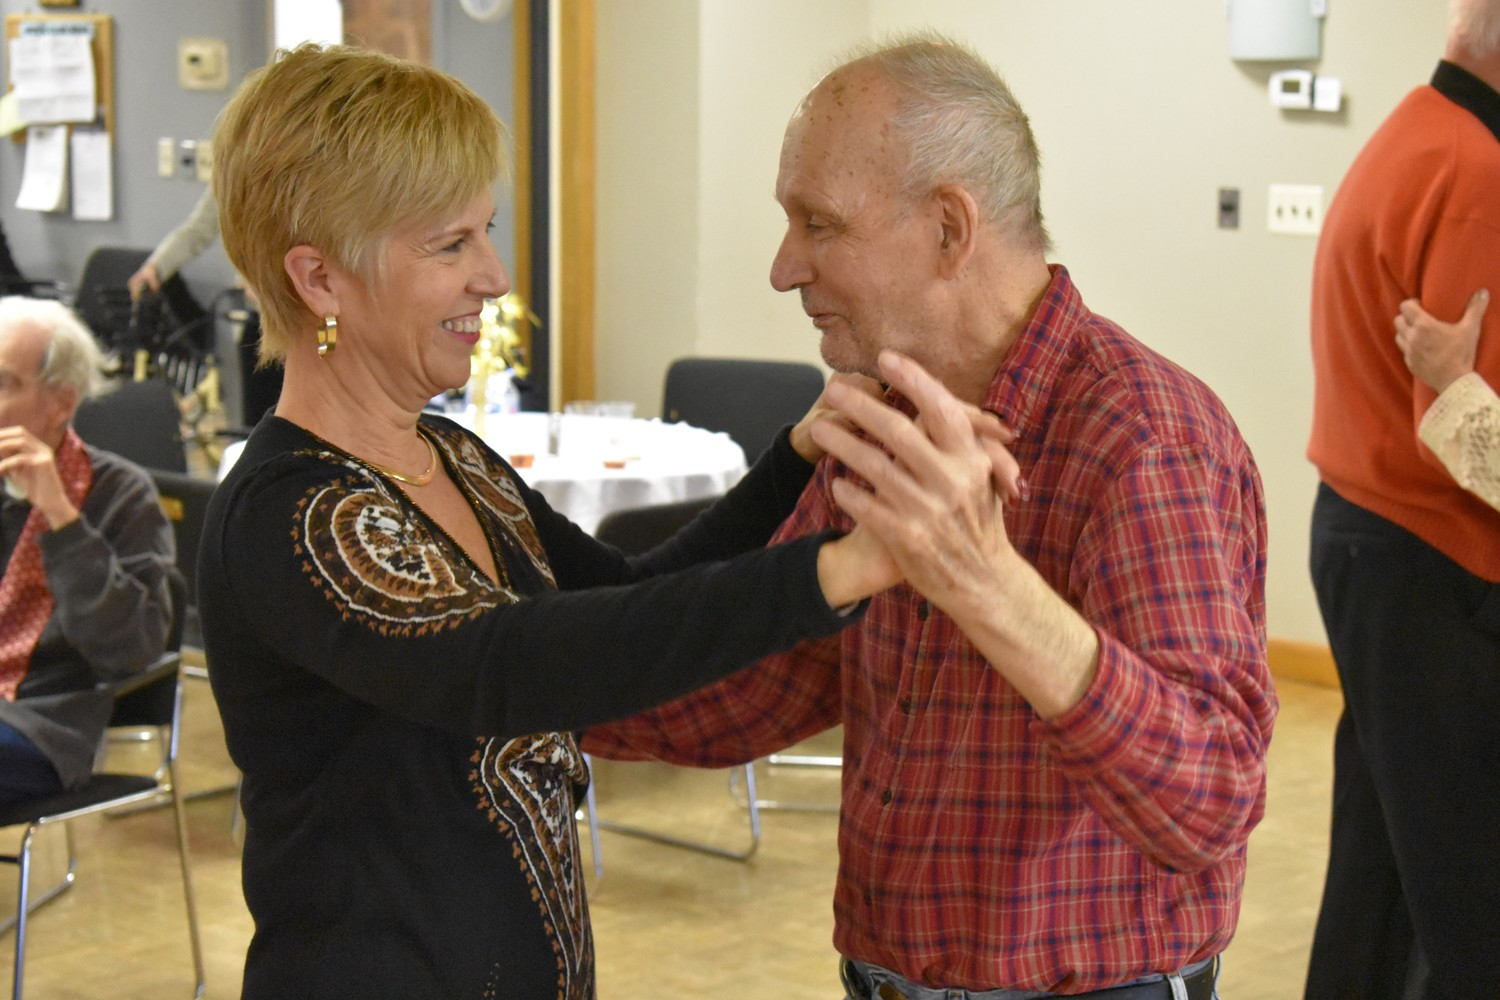 Chris O'Leary, left, director of the Sandel Senior Center, danced with Jesse Langdon.